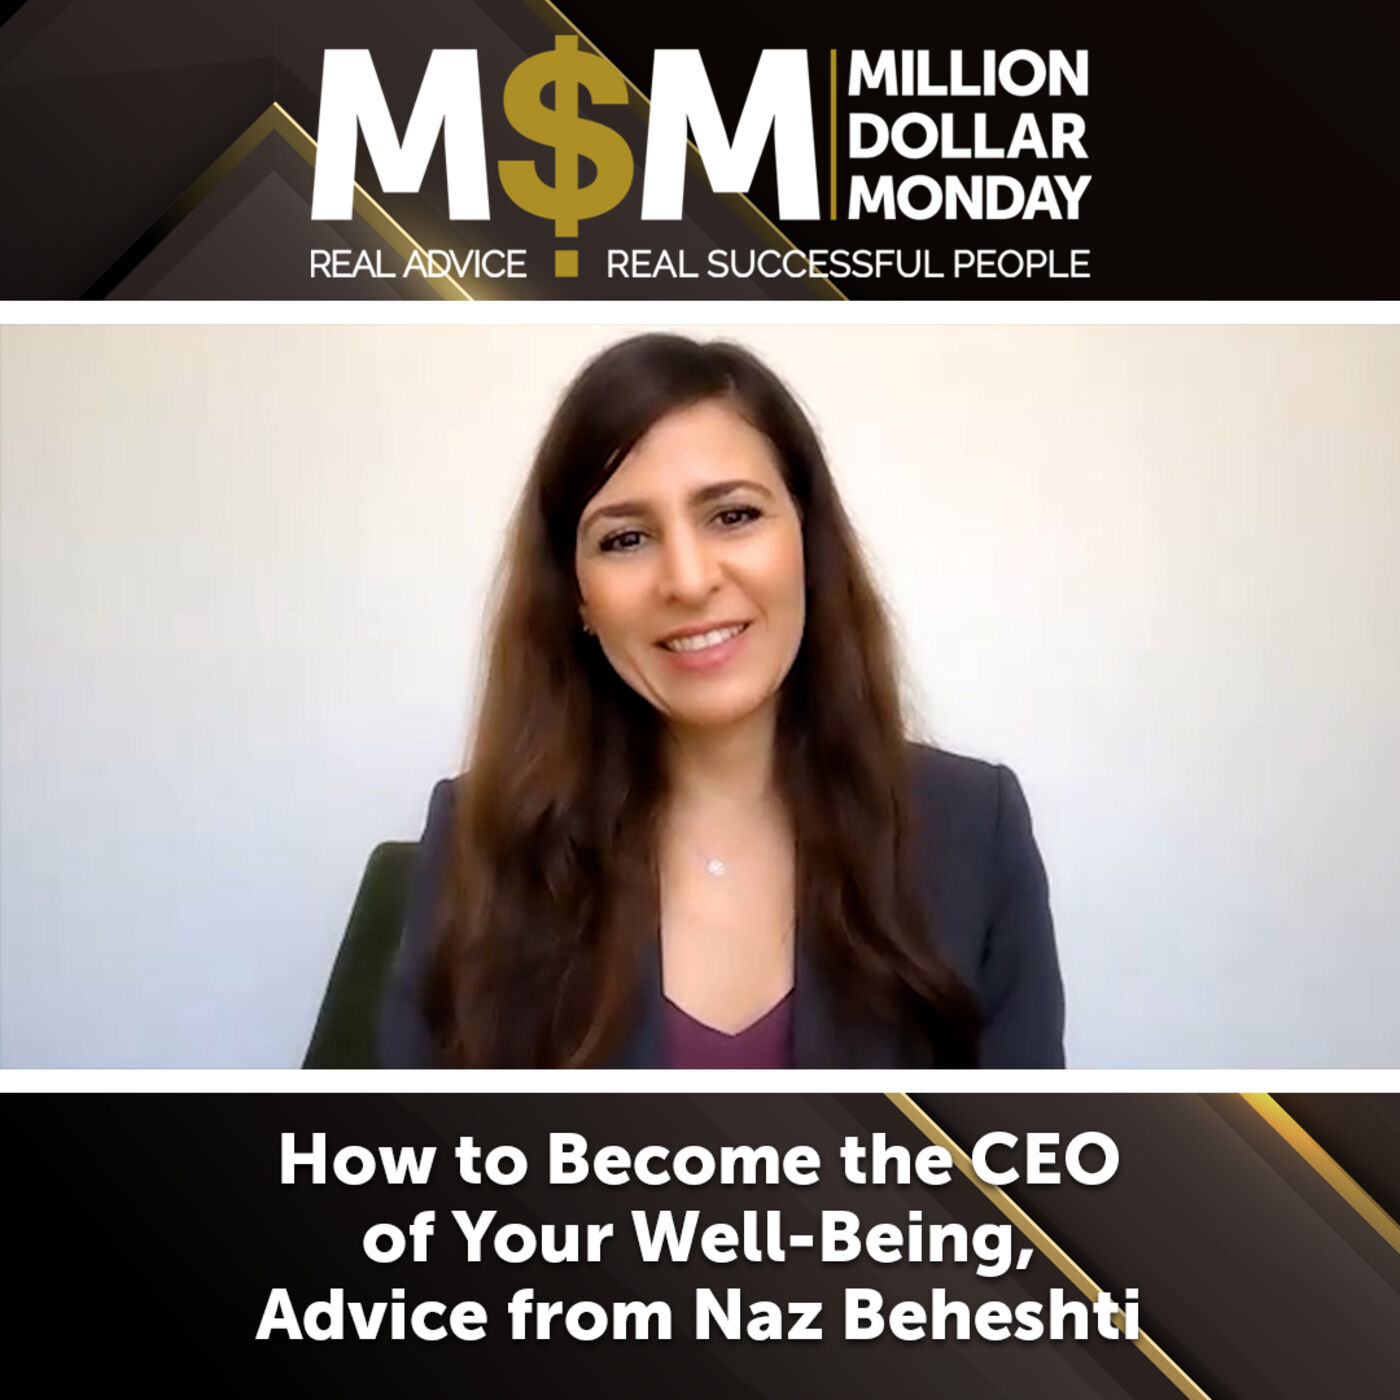 How to Become the CEO of Your Well-Being, Advice from Naz Beheshti